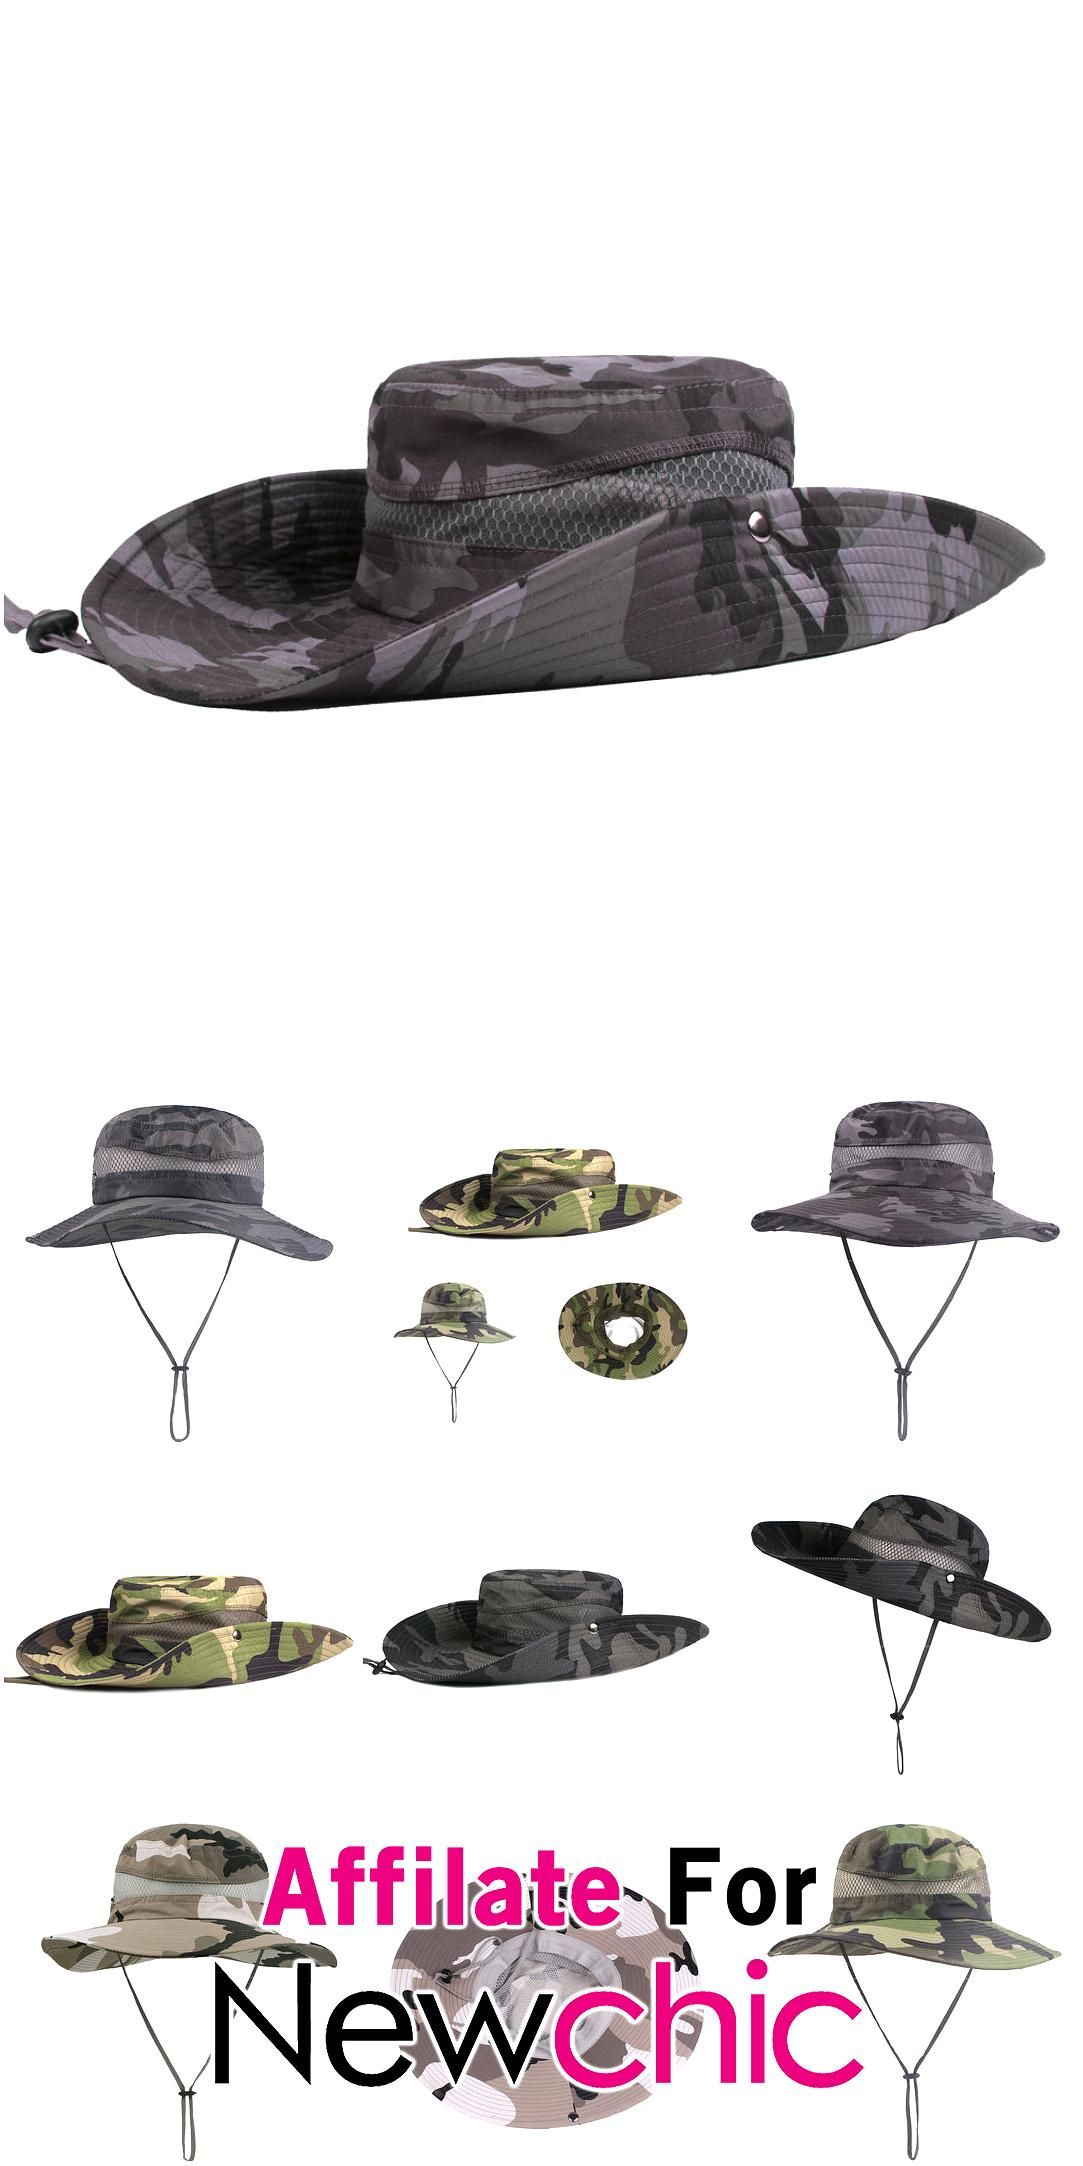 Mens Twill Side Snap Chin Cord Hat Wide Brim Bucket Cap Windproof Fishing Hats Sunshade Cap USD 117 Mens Twill Side Snap Chin Cord Hat Wide Brim Bucket Cap Windproof Fish...